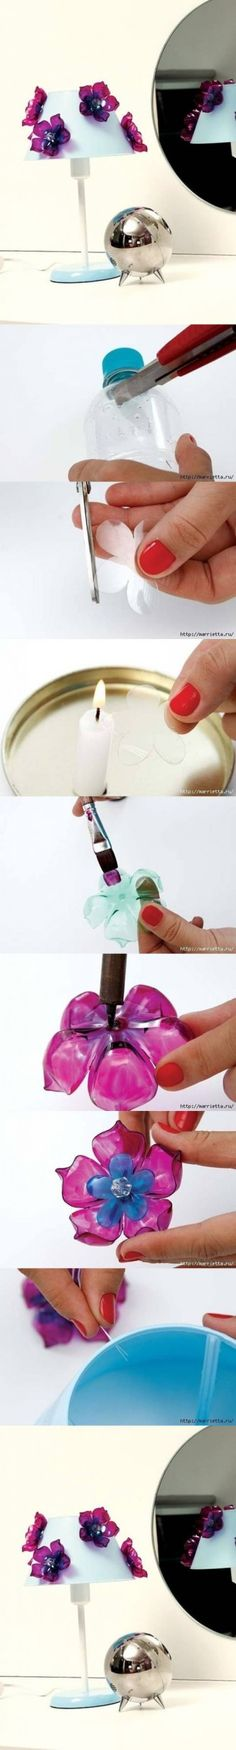 DIY Flowers of Recycled Plastic Bottles DIY Projects